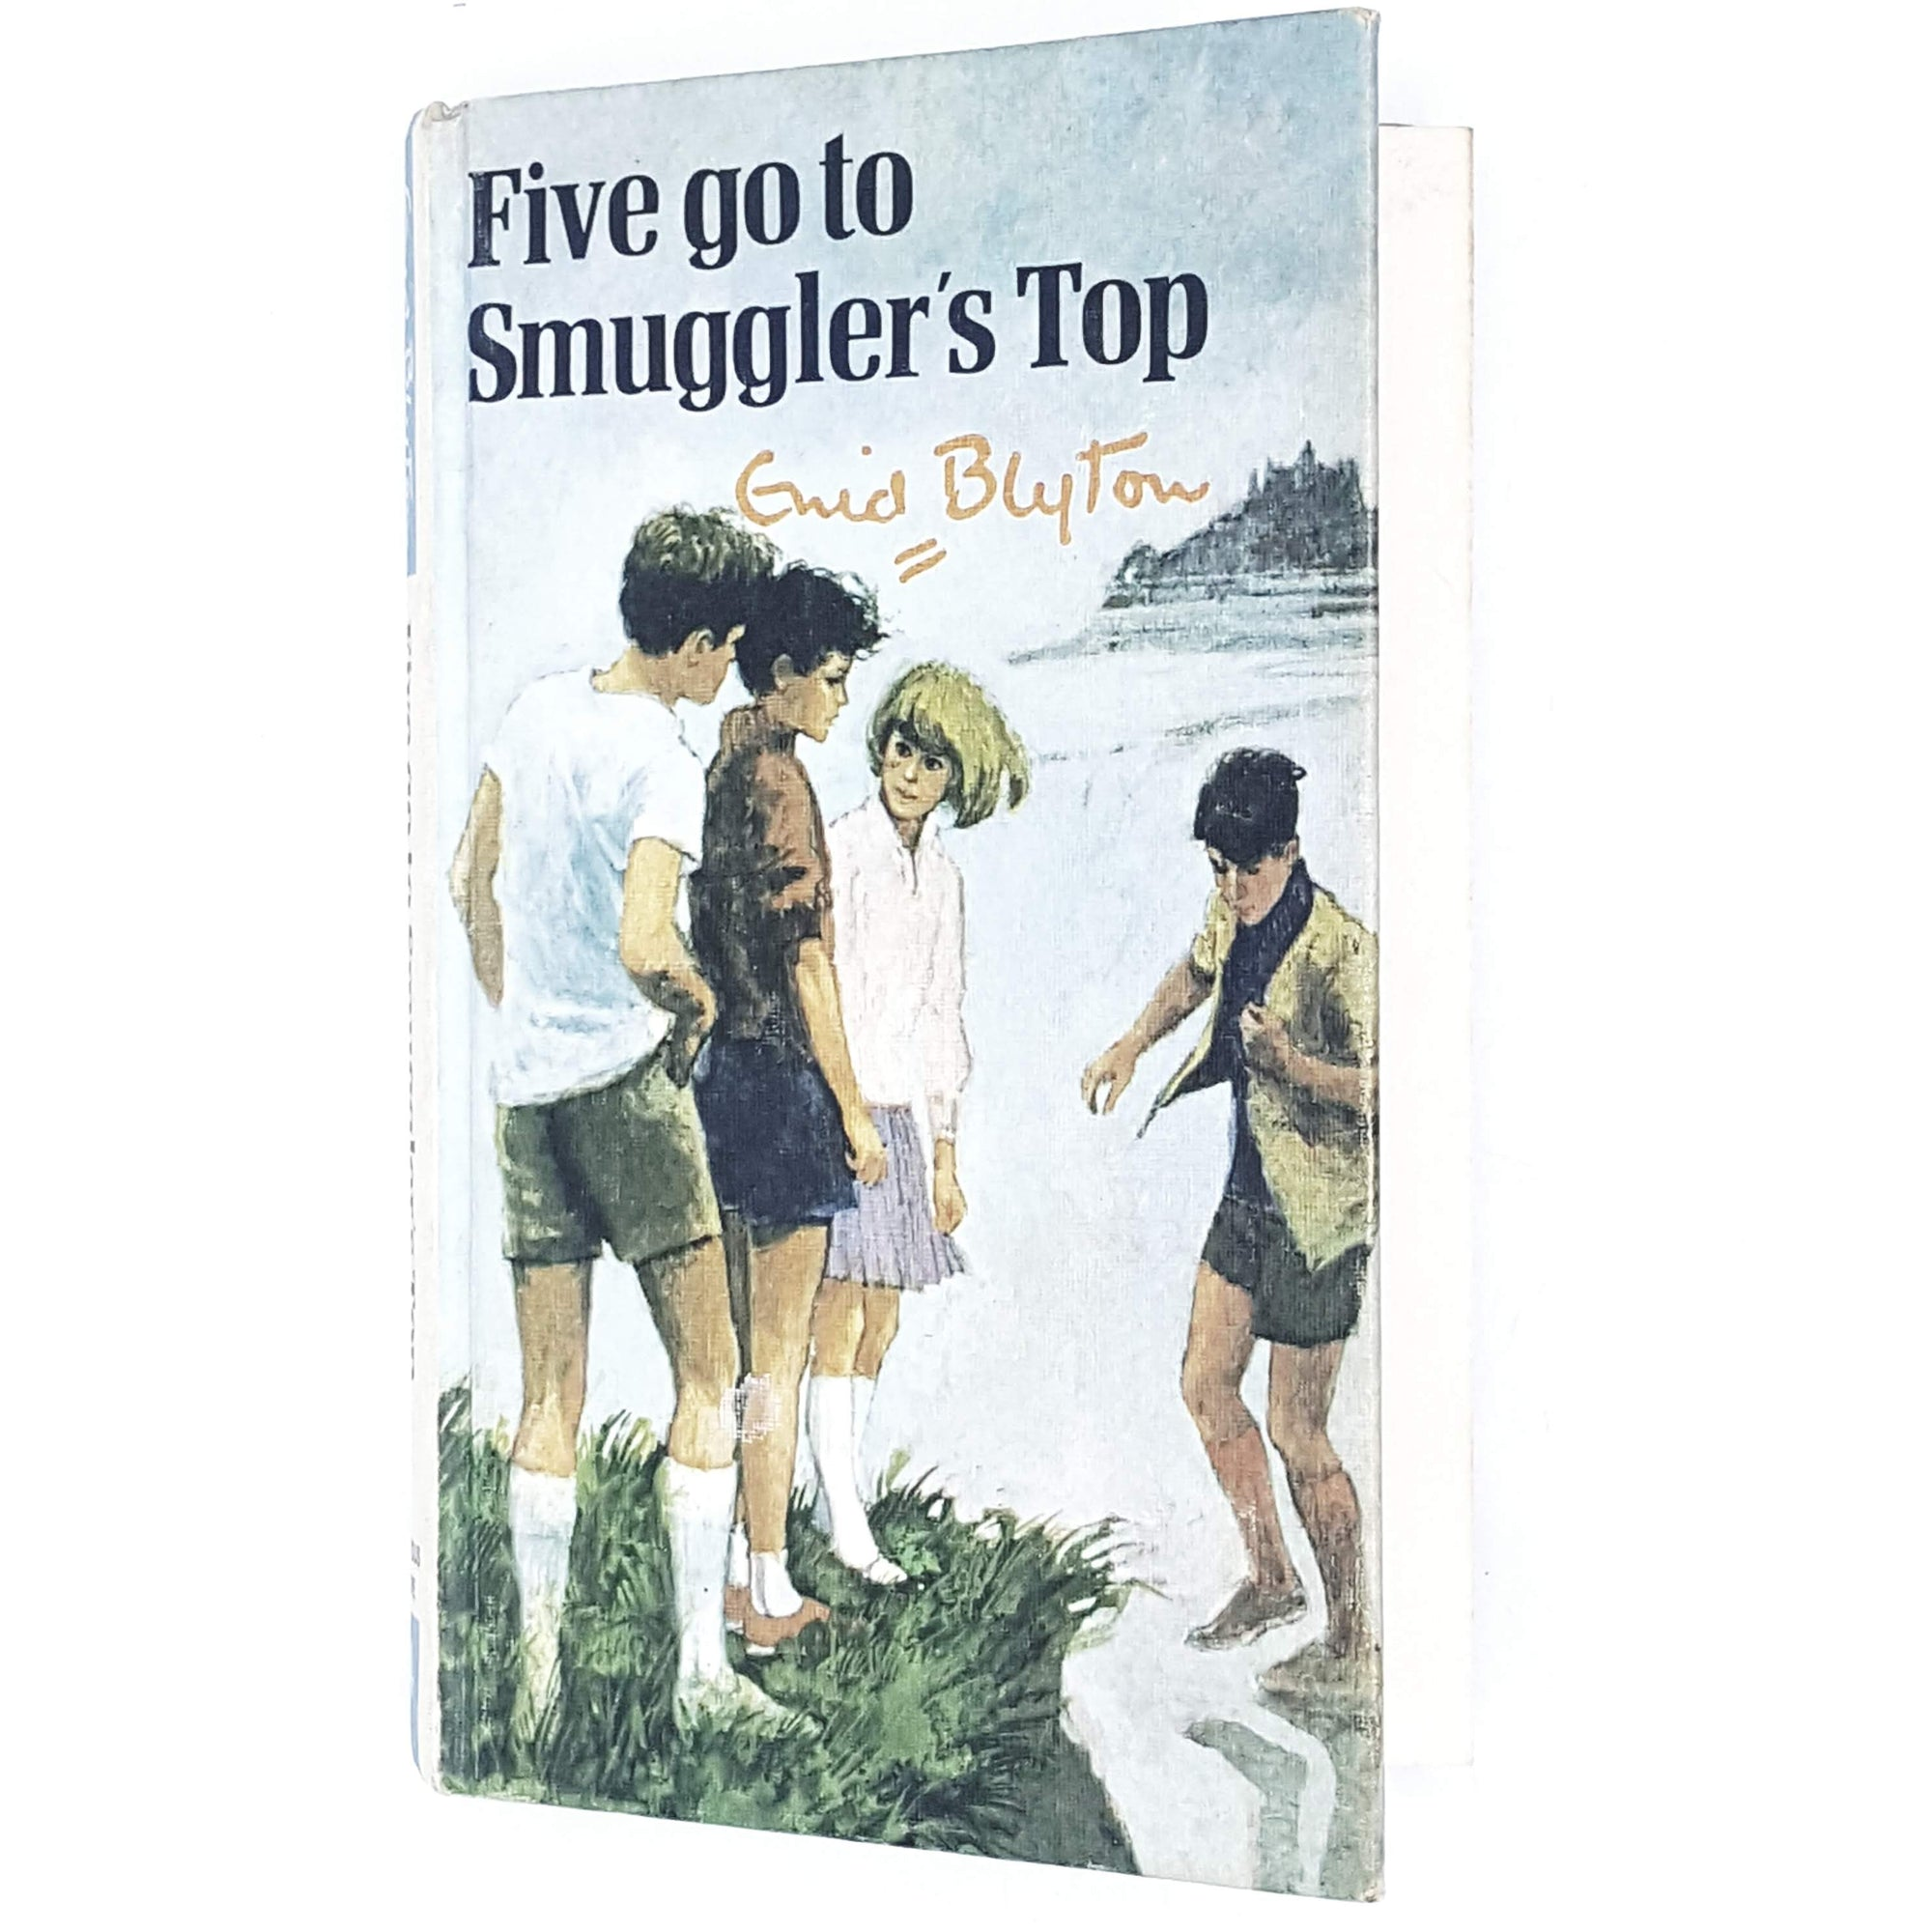 five-top-enid-blyton-kids-illustrated-vintage-book-country-library-book